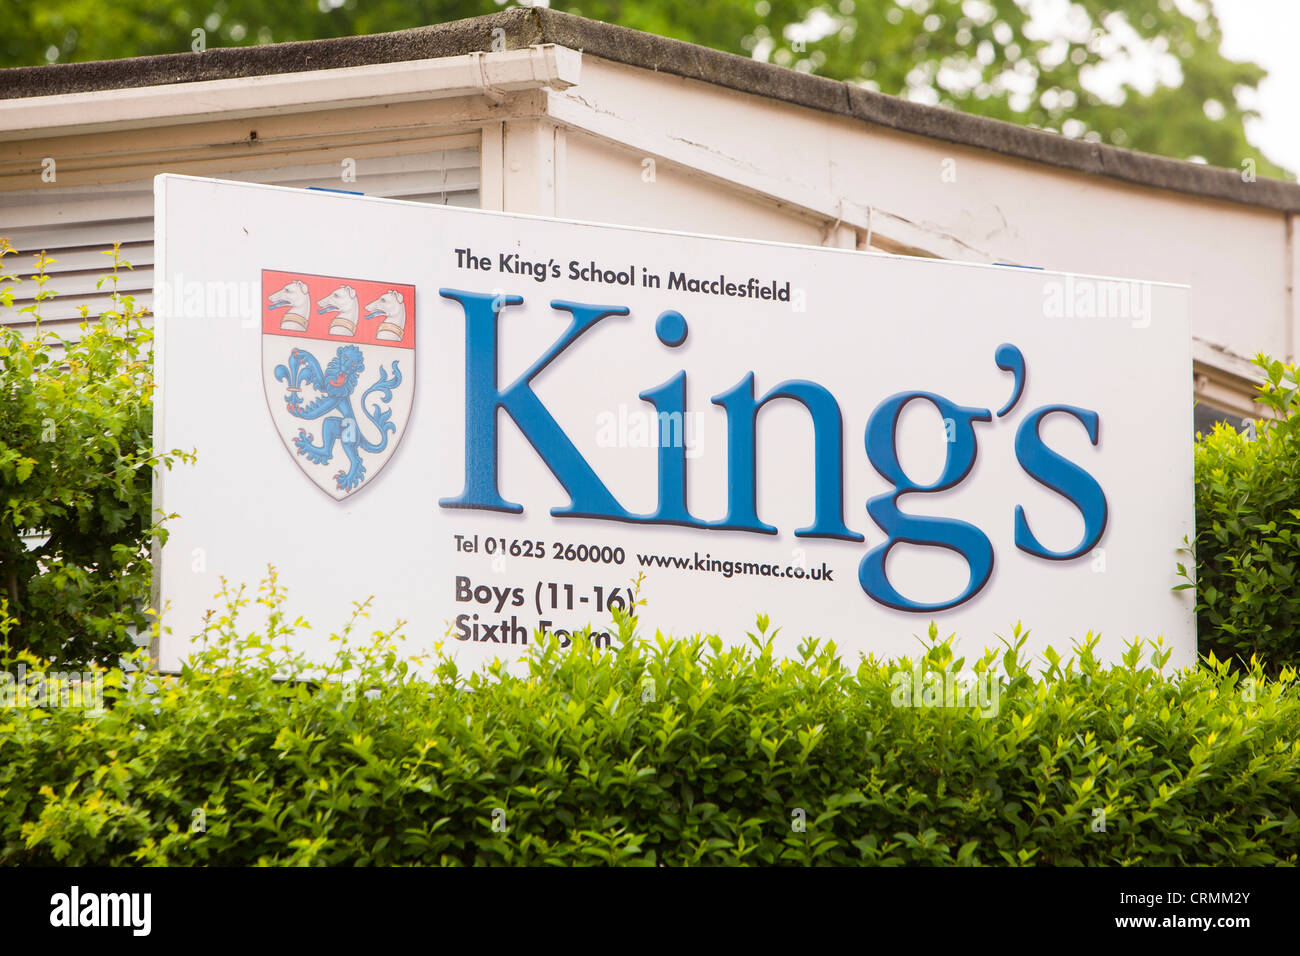 The Kings School in Macclesfield, Cheshire, UK. This ancient grammar school was founded in 1502. - Stock Image